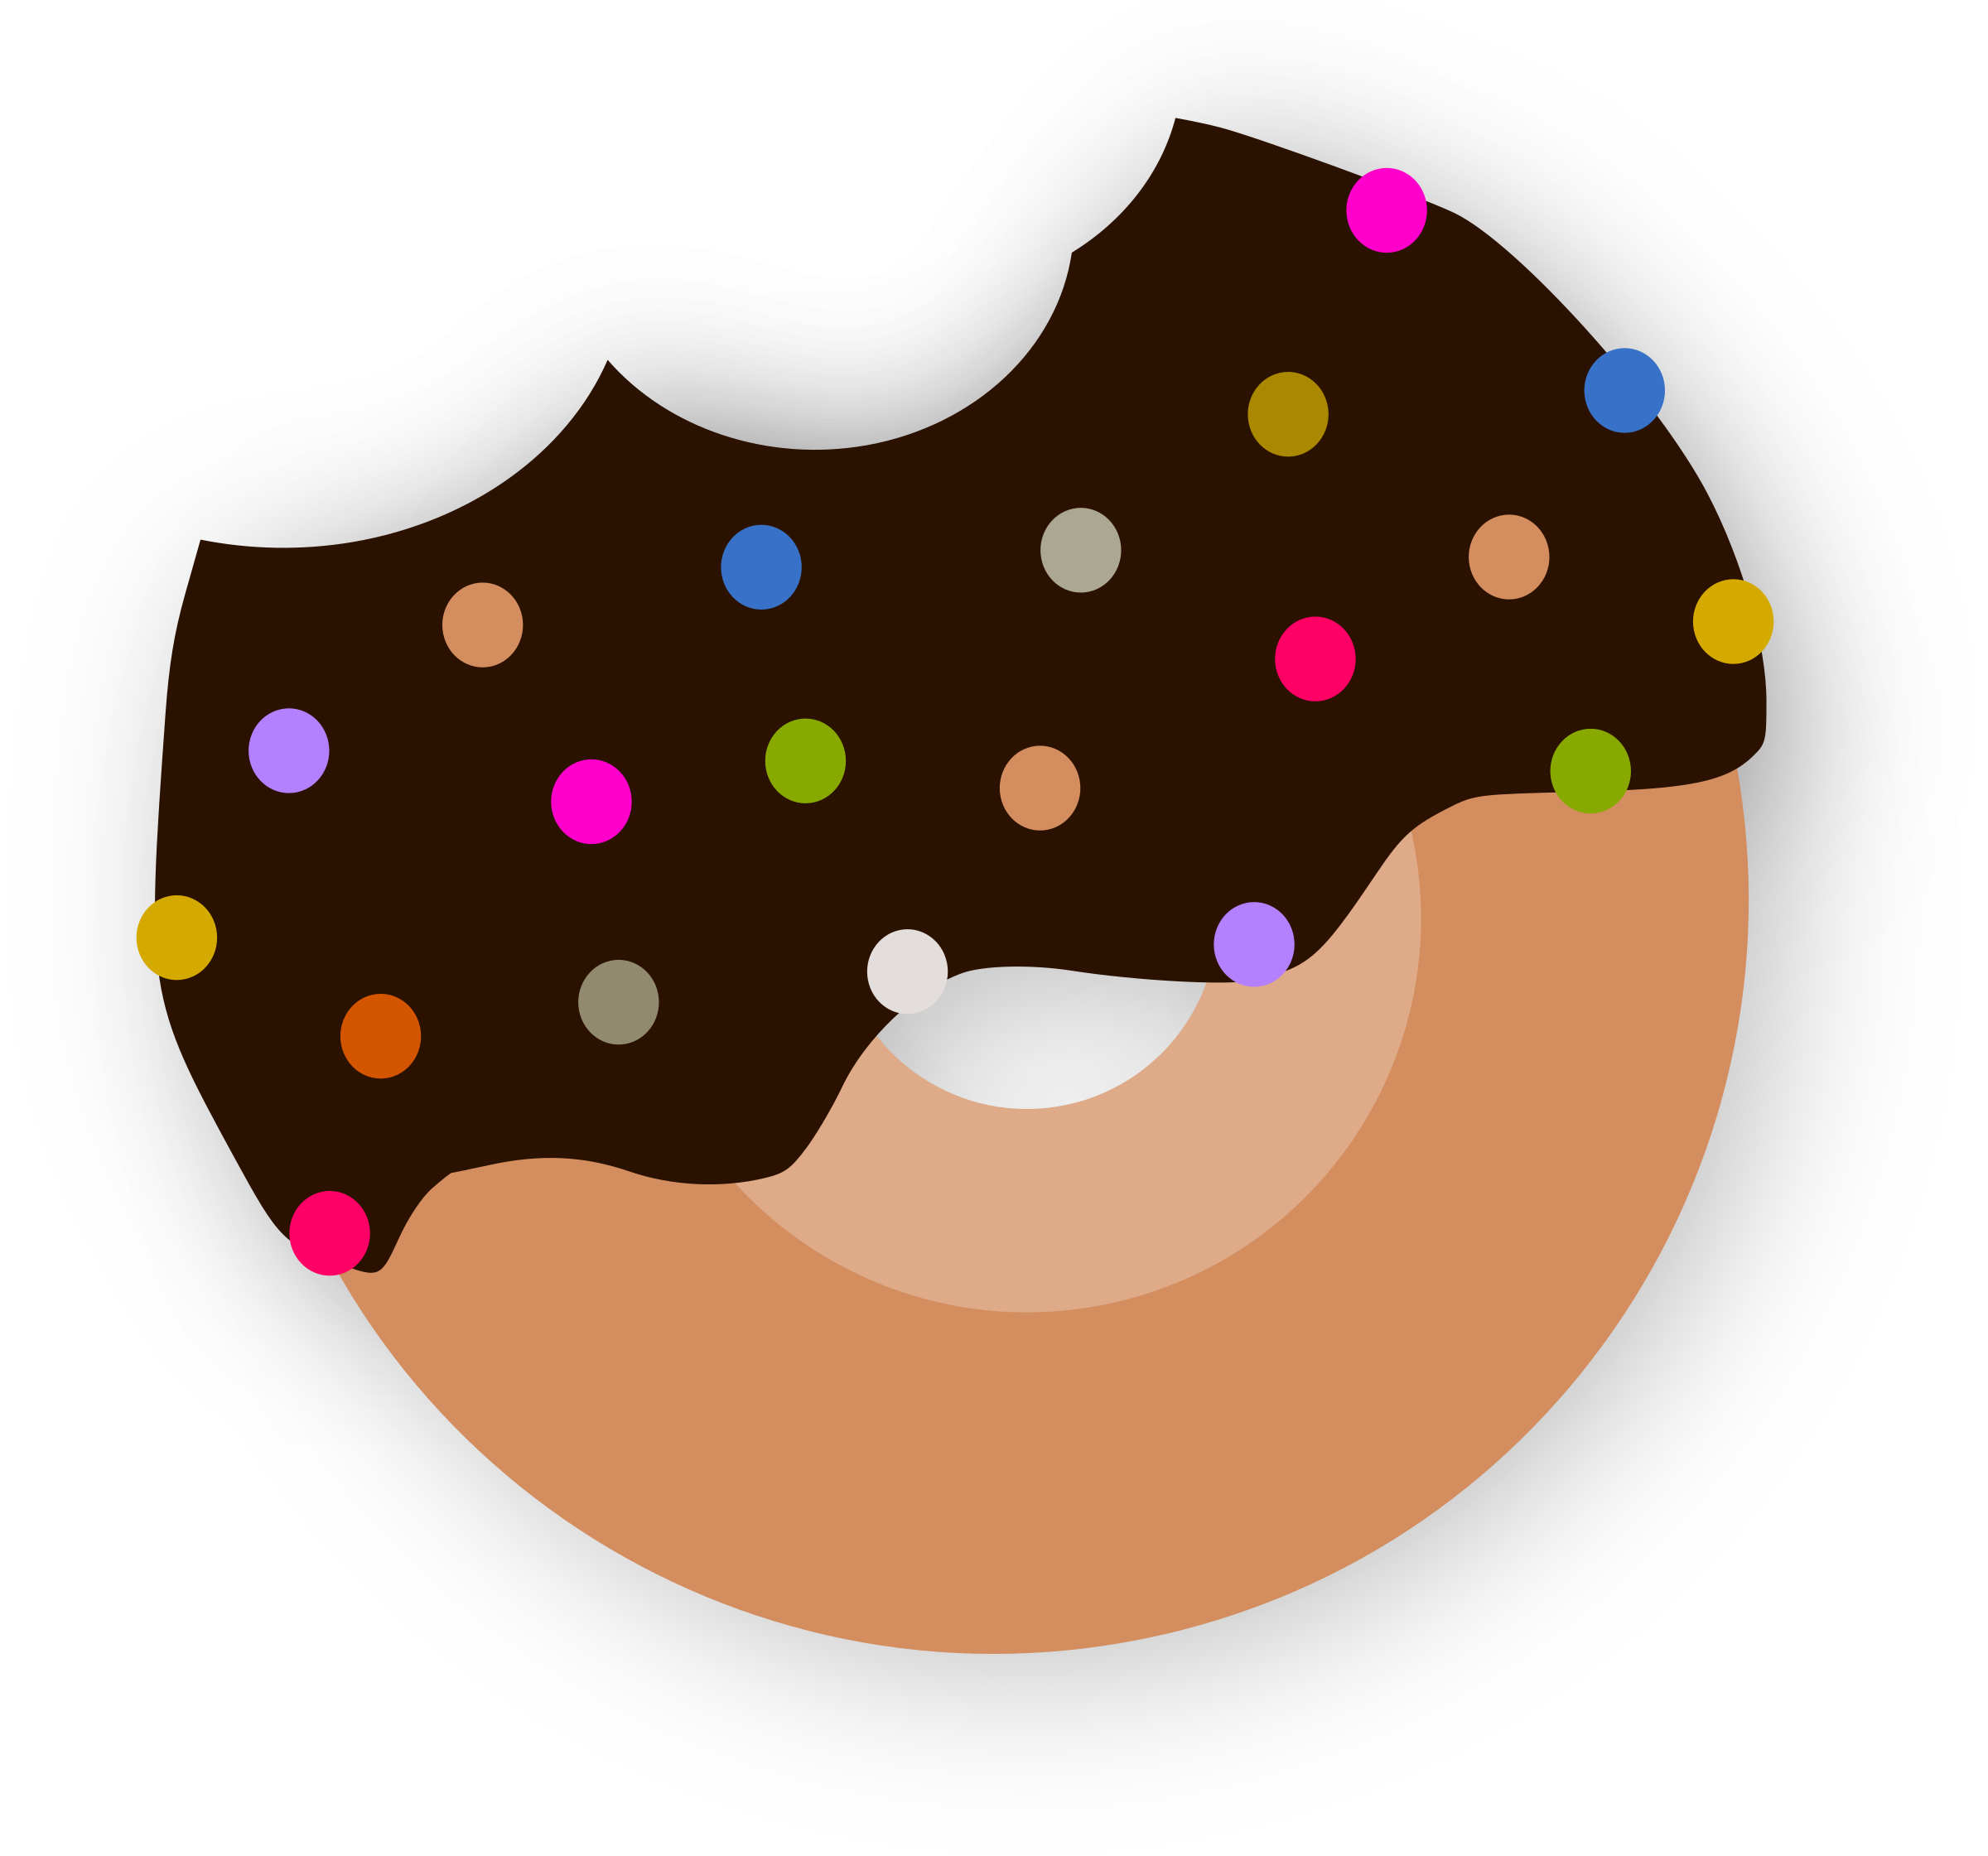 Donut clipart design. Delicious with chocolate big